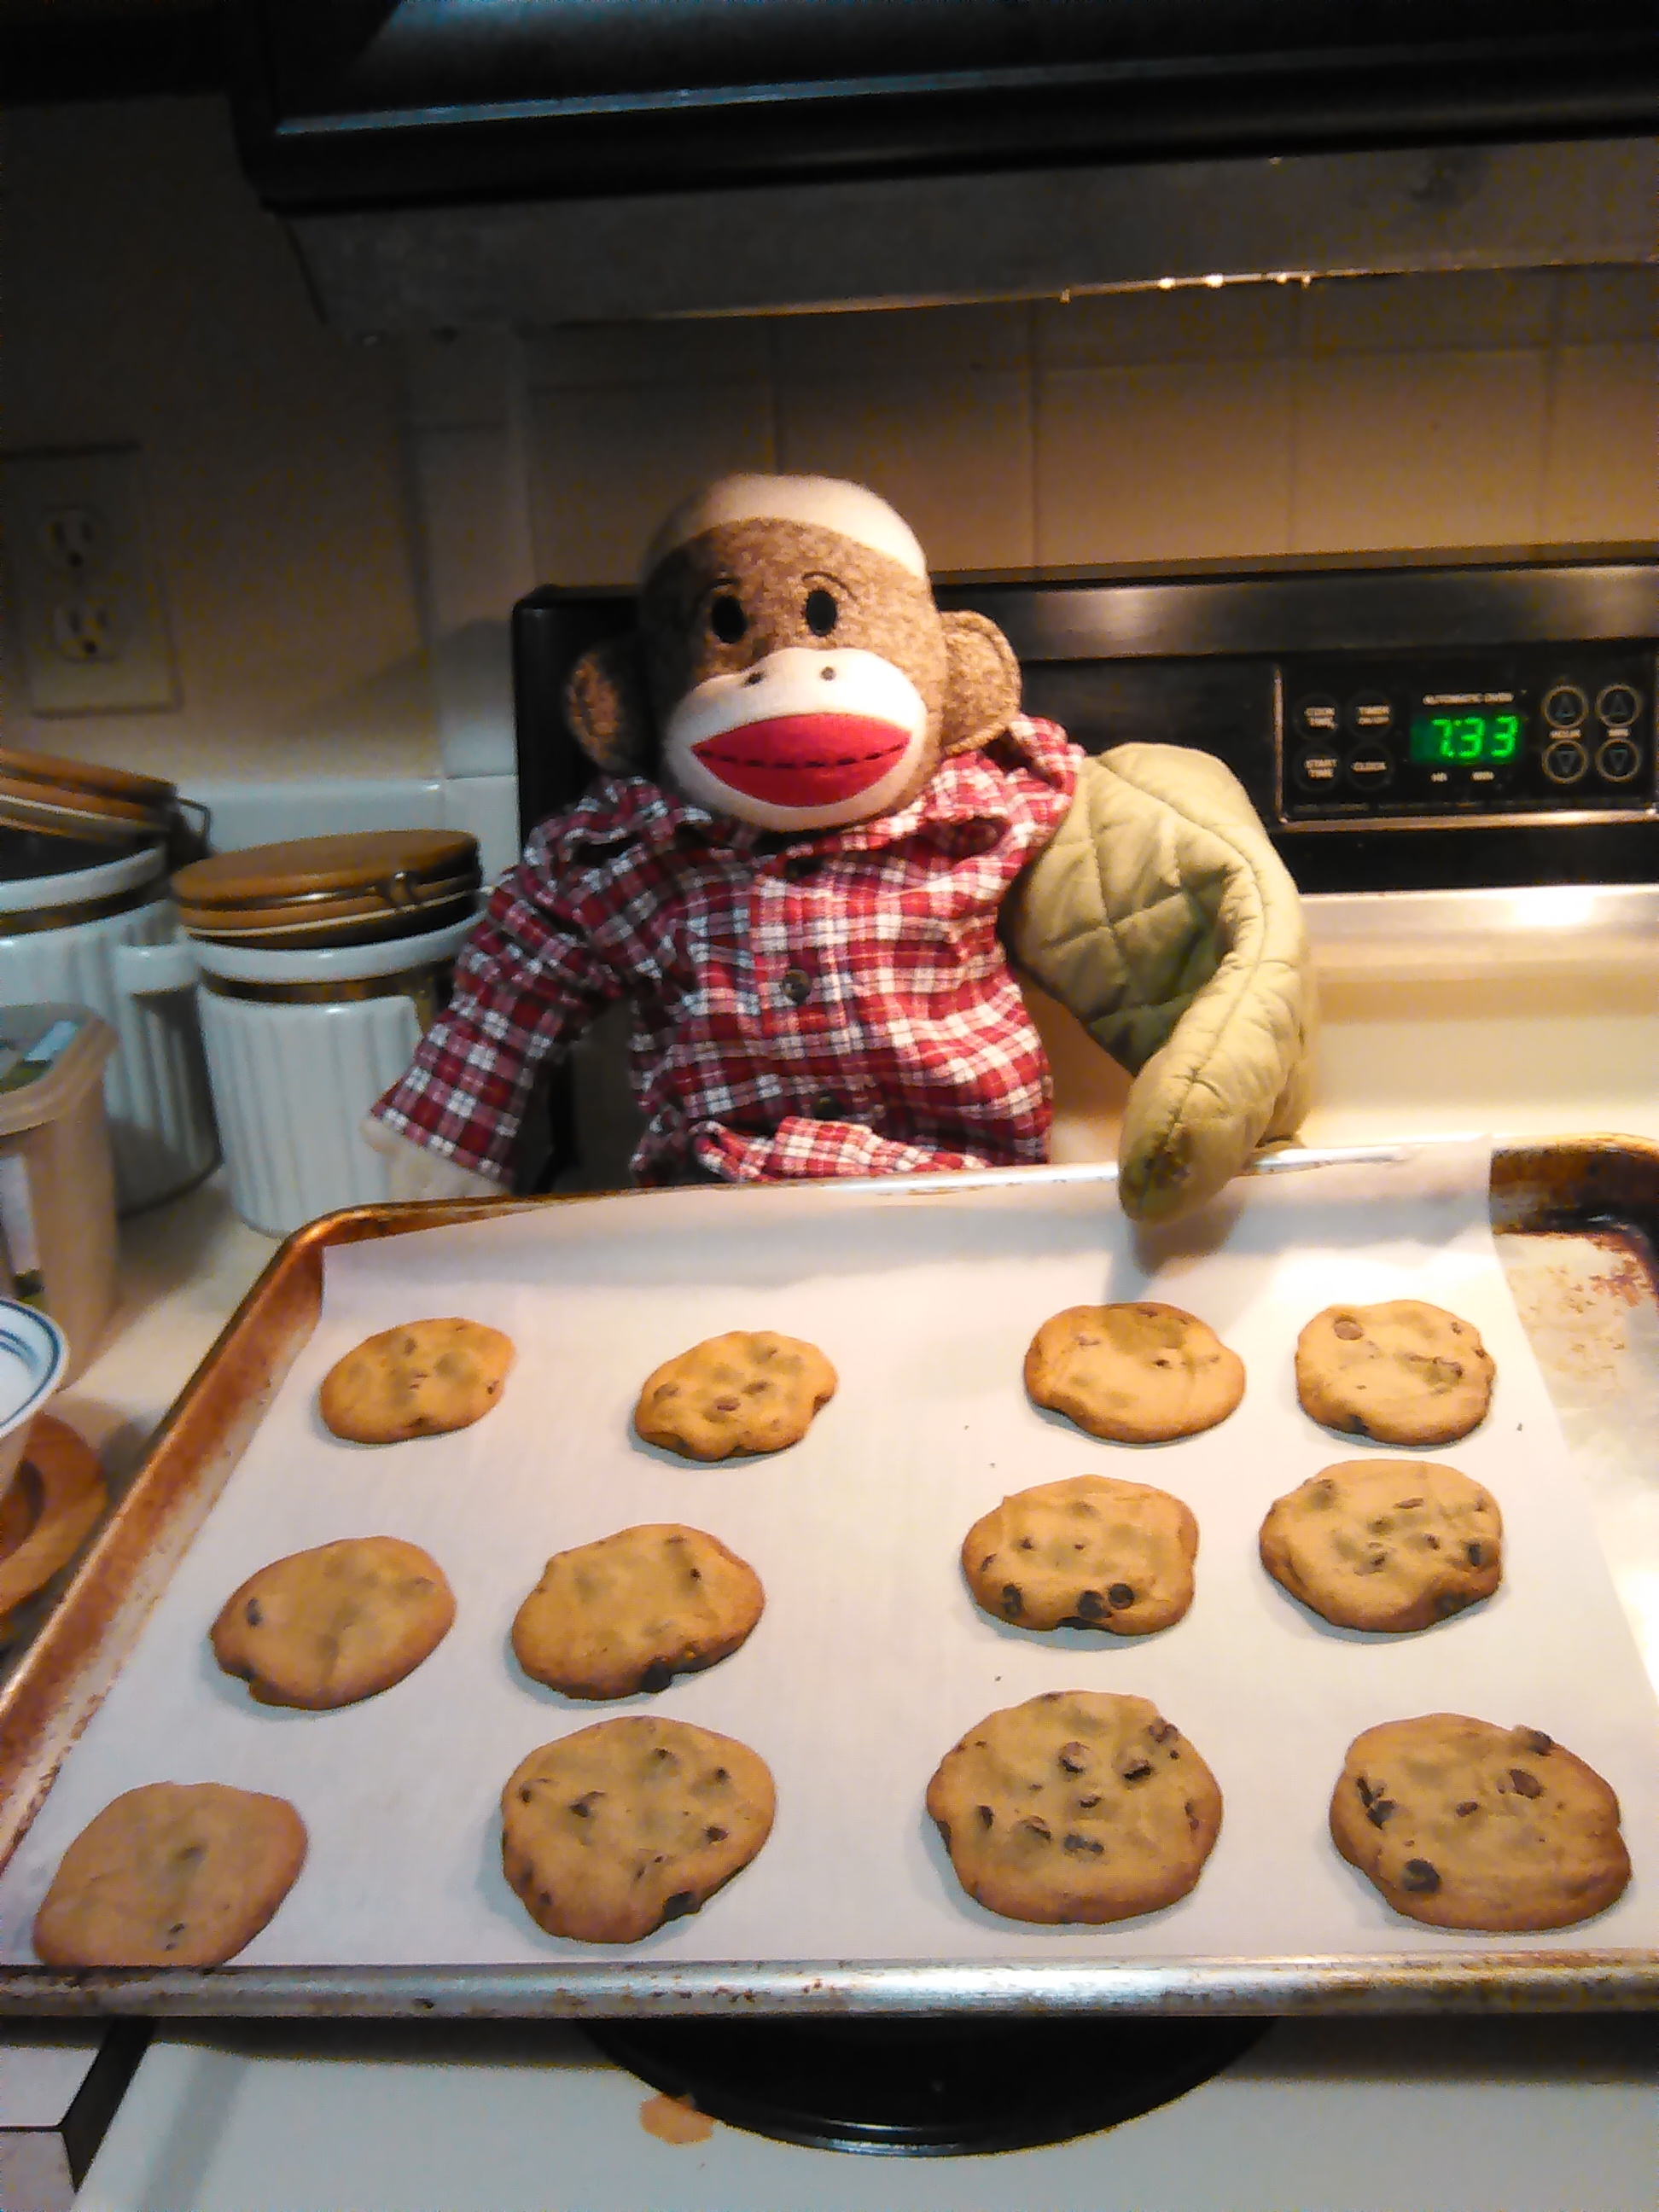 Sock Munkee baking cookies